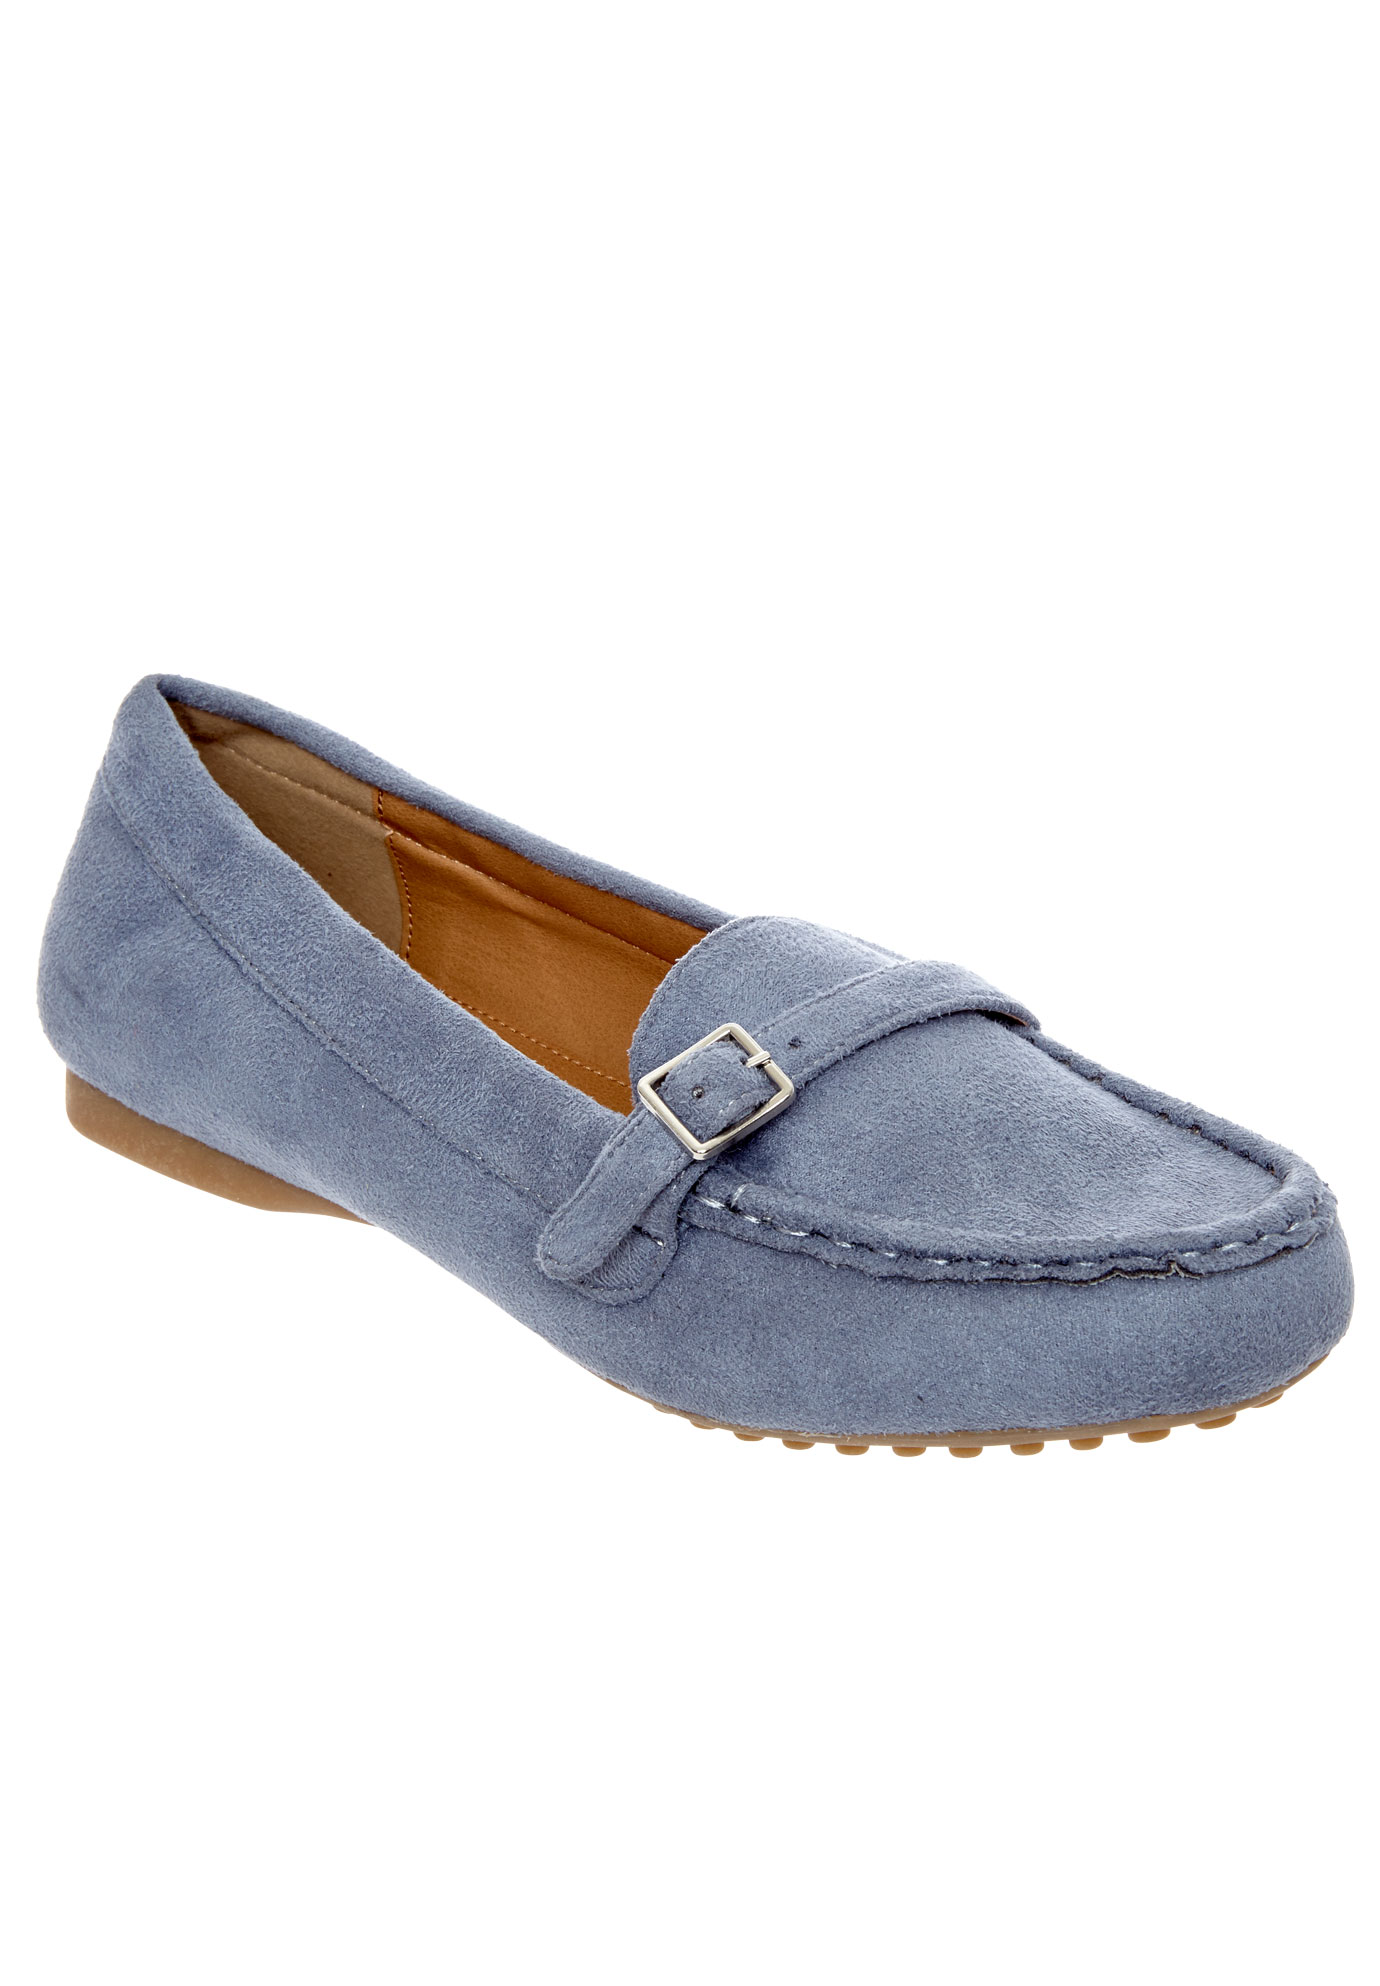 Brylee Flats by Comfortview®, CHAMBRAY, hi-res